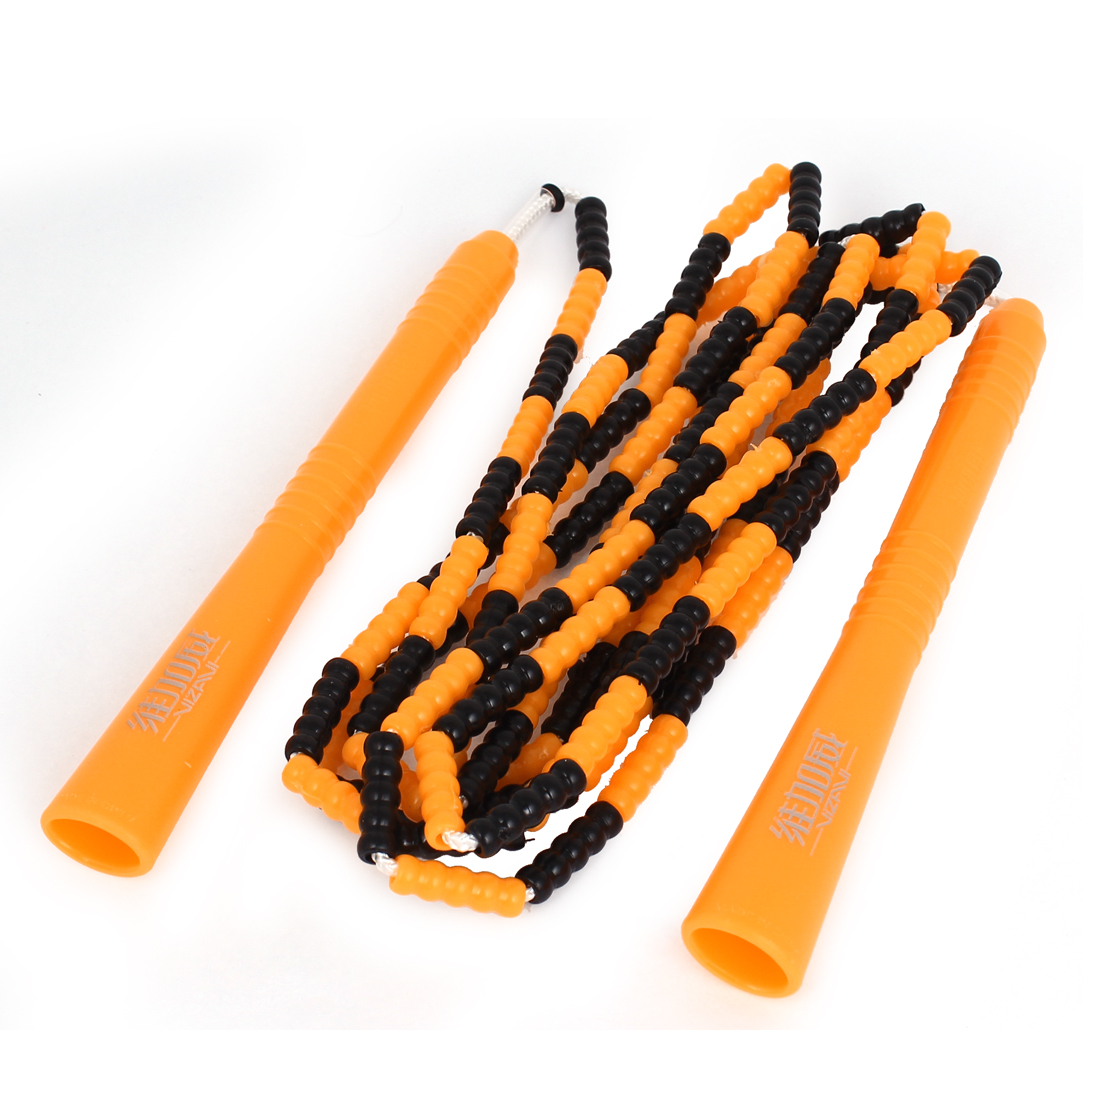 Rope Fitness Speed Jump Boxing Exercise Gym Jumping 3 Meters Orange Black